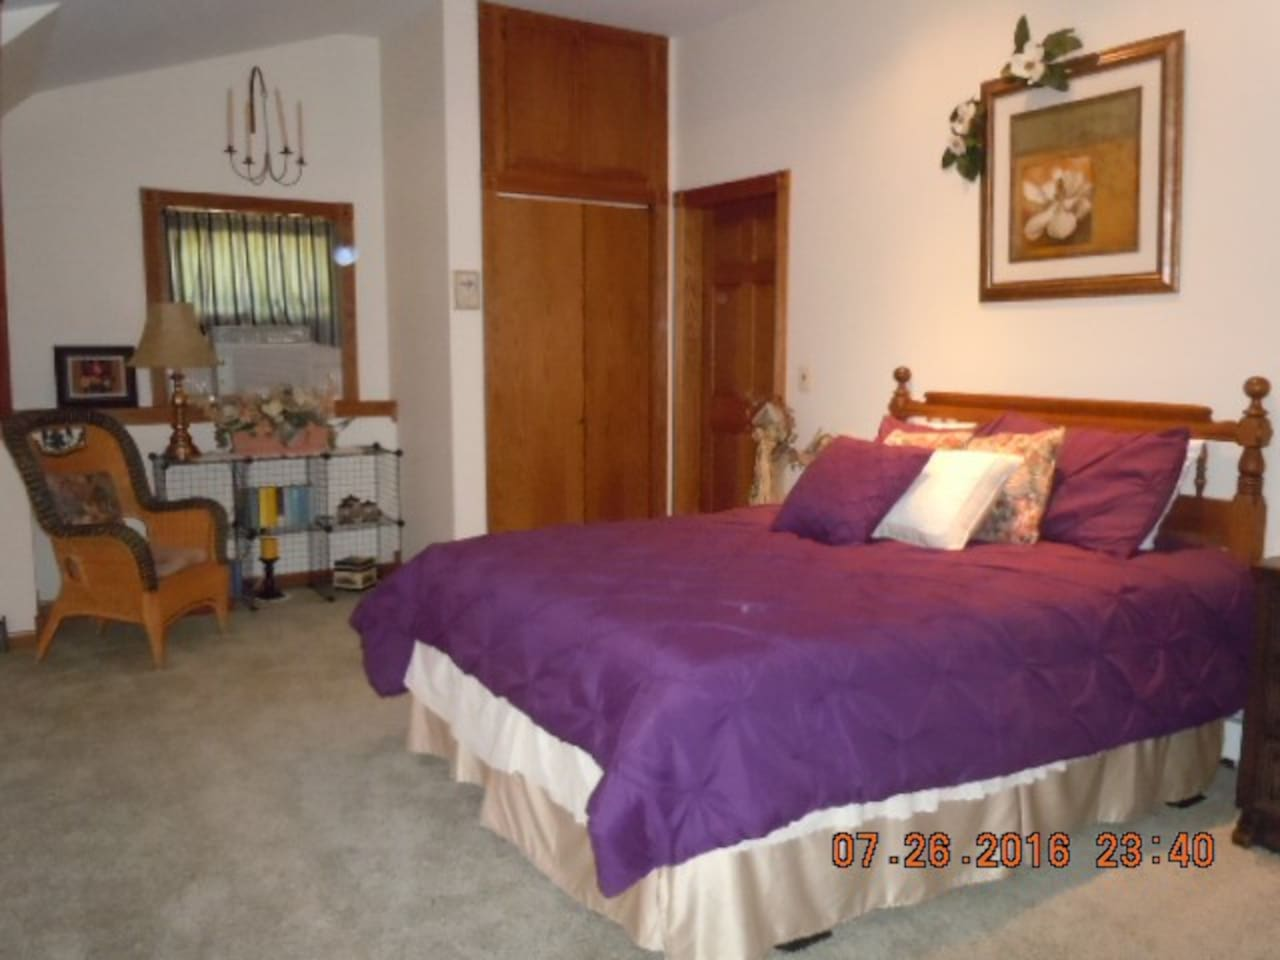 24' x 24' huge bedroom with 2 Queen Beds,  Window air conditioner, Each room has a thermostat for heat adjustment,  Ceiling fans in 4 rooms,  Wicker love seat, 3 wicker chairs & a desk. The 2  bedrooms & bathroom has privacy locks.